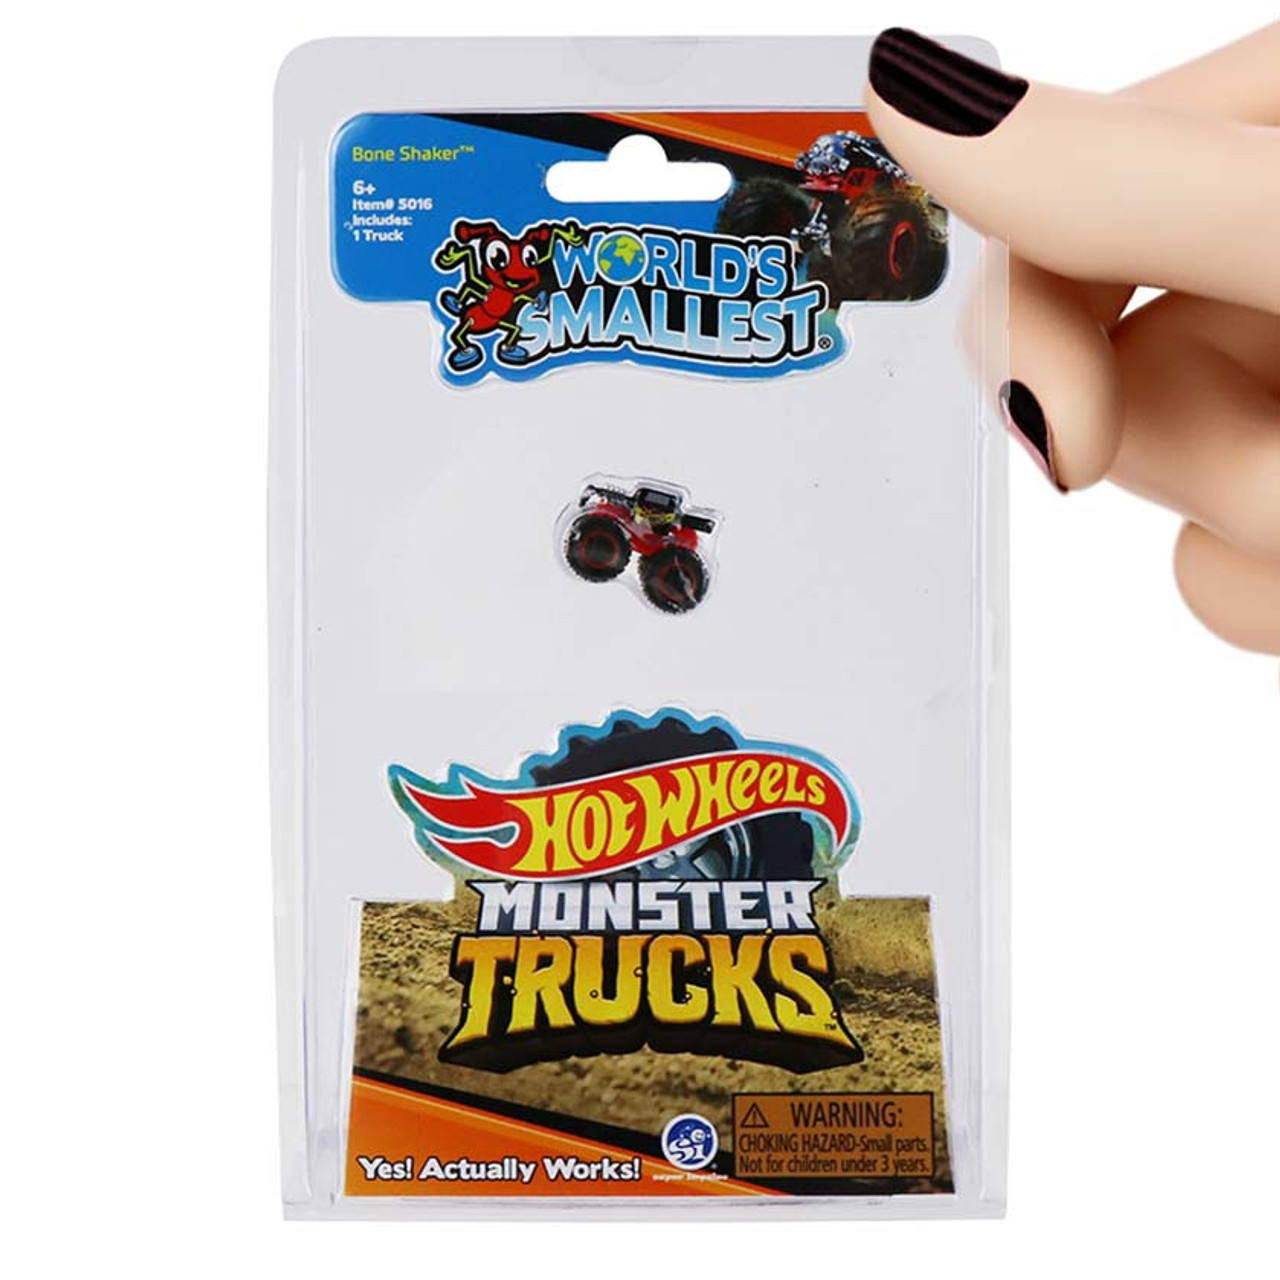 World's Smallest Hot Wheels Monster Trucks